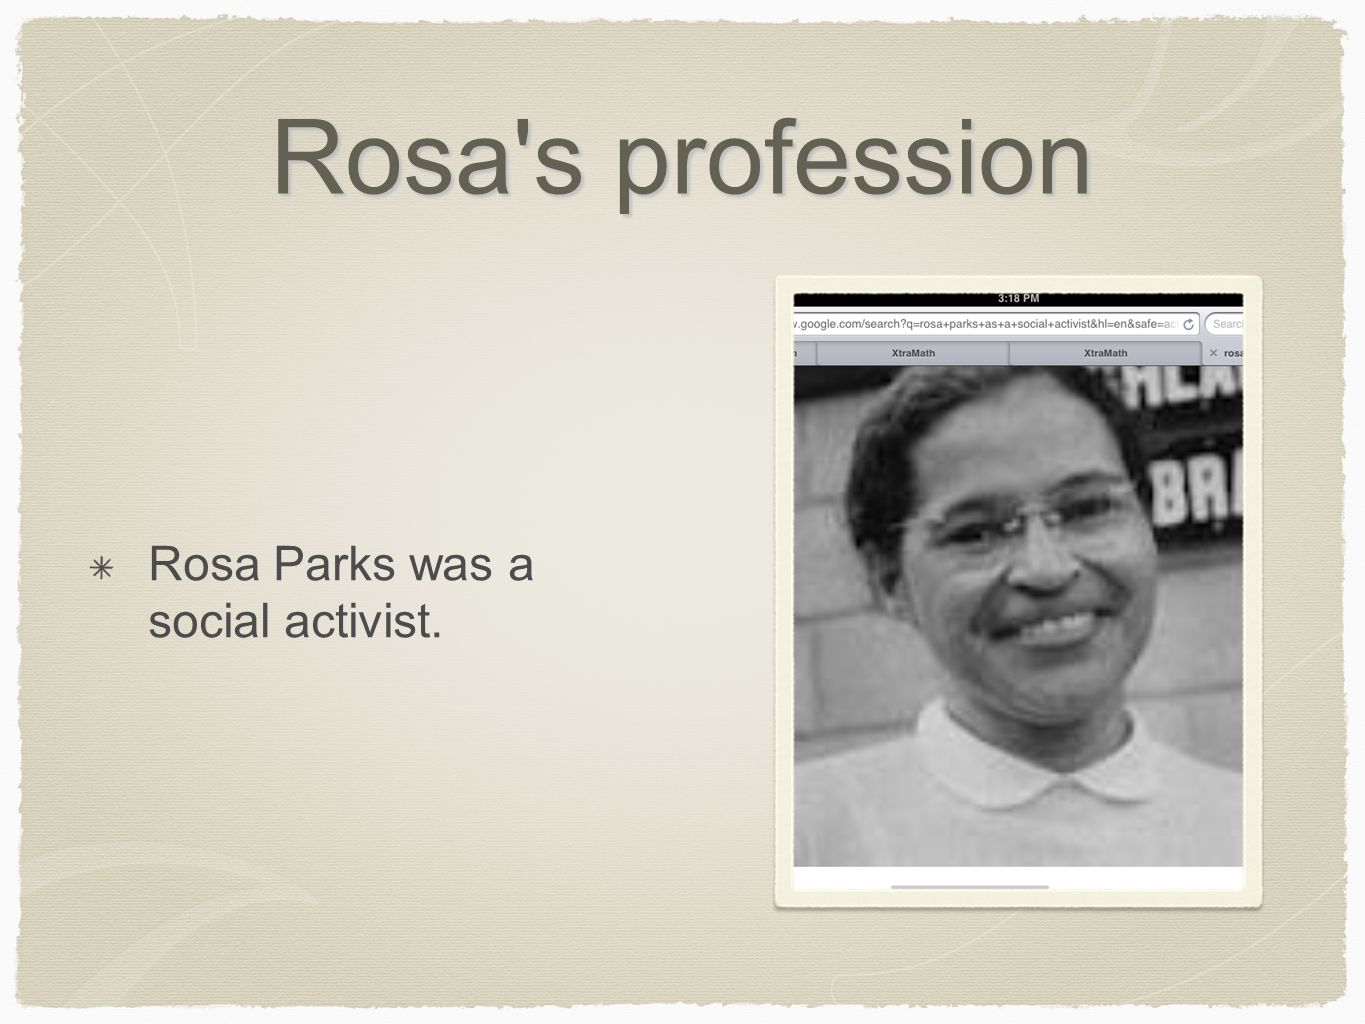 rosa parks an activist essay Of times the life parks biography of rosa and a free shipping on qualifying offers follow the accomplishments of civil rights activist rosa parks, and learn vs and other essays anarcho capitalism anarchism how her refusal to give up her seat on a montgomery bus helped end public segregation, at a year.